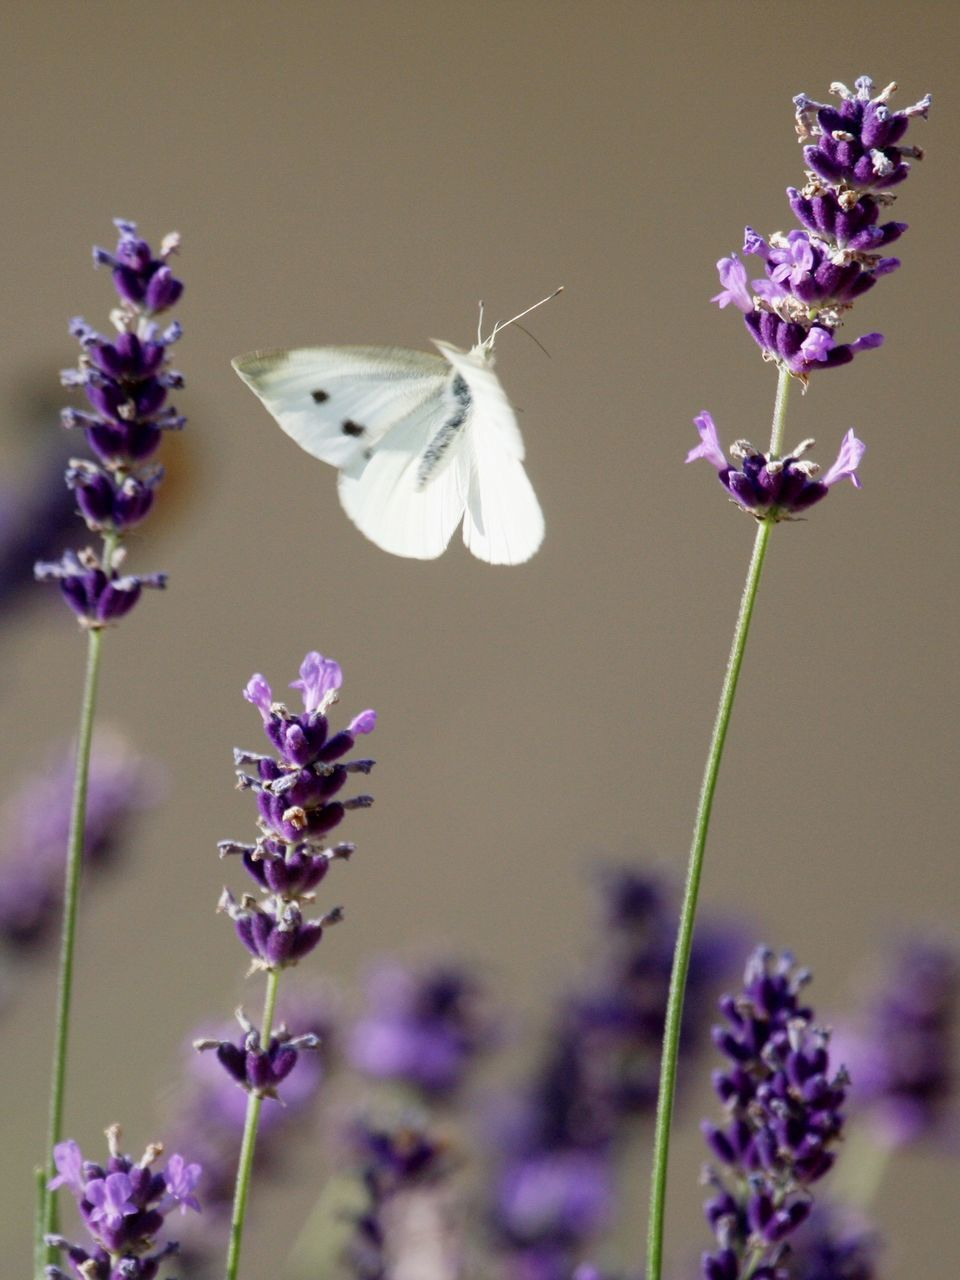 Close-Up Of Butterfly Flying Over Purple Flowers